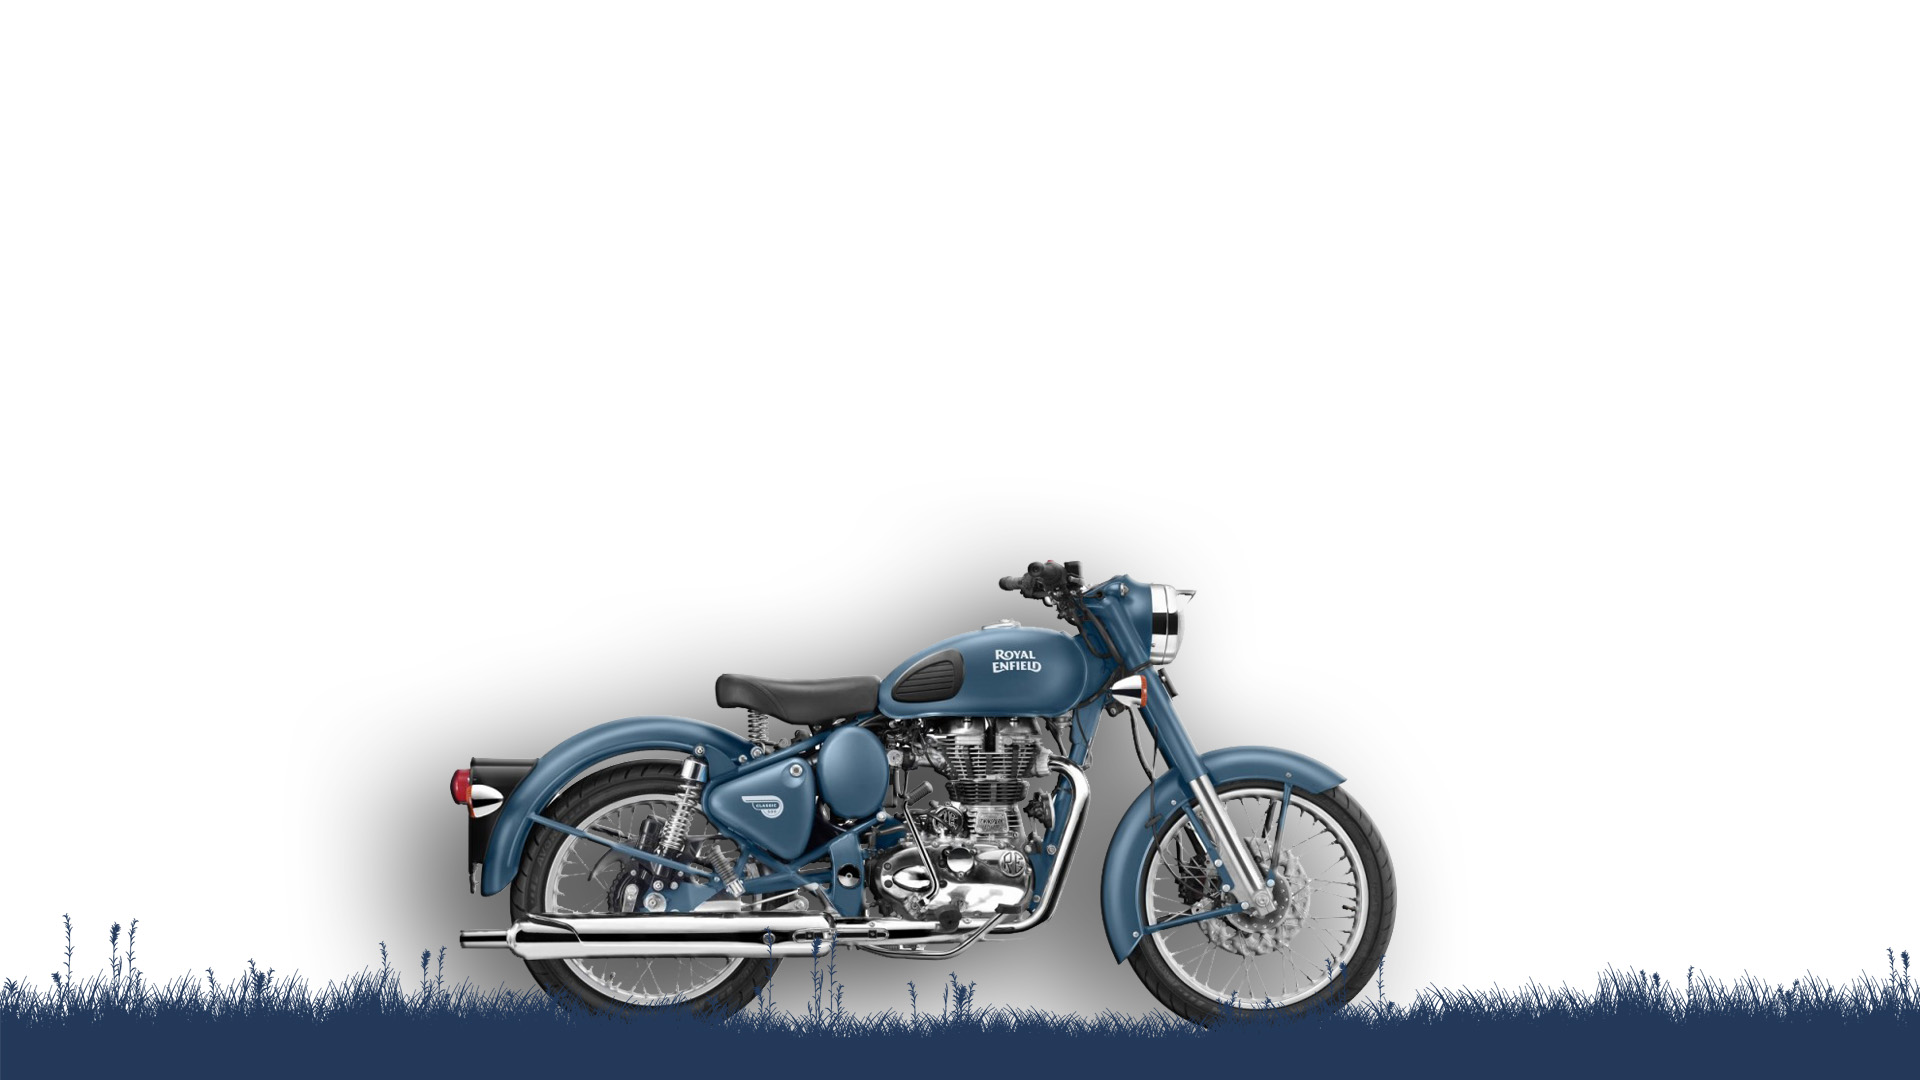 Home-page-image-Royal Enfield-img